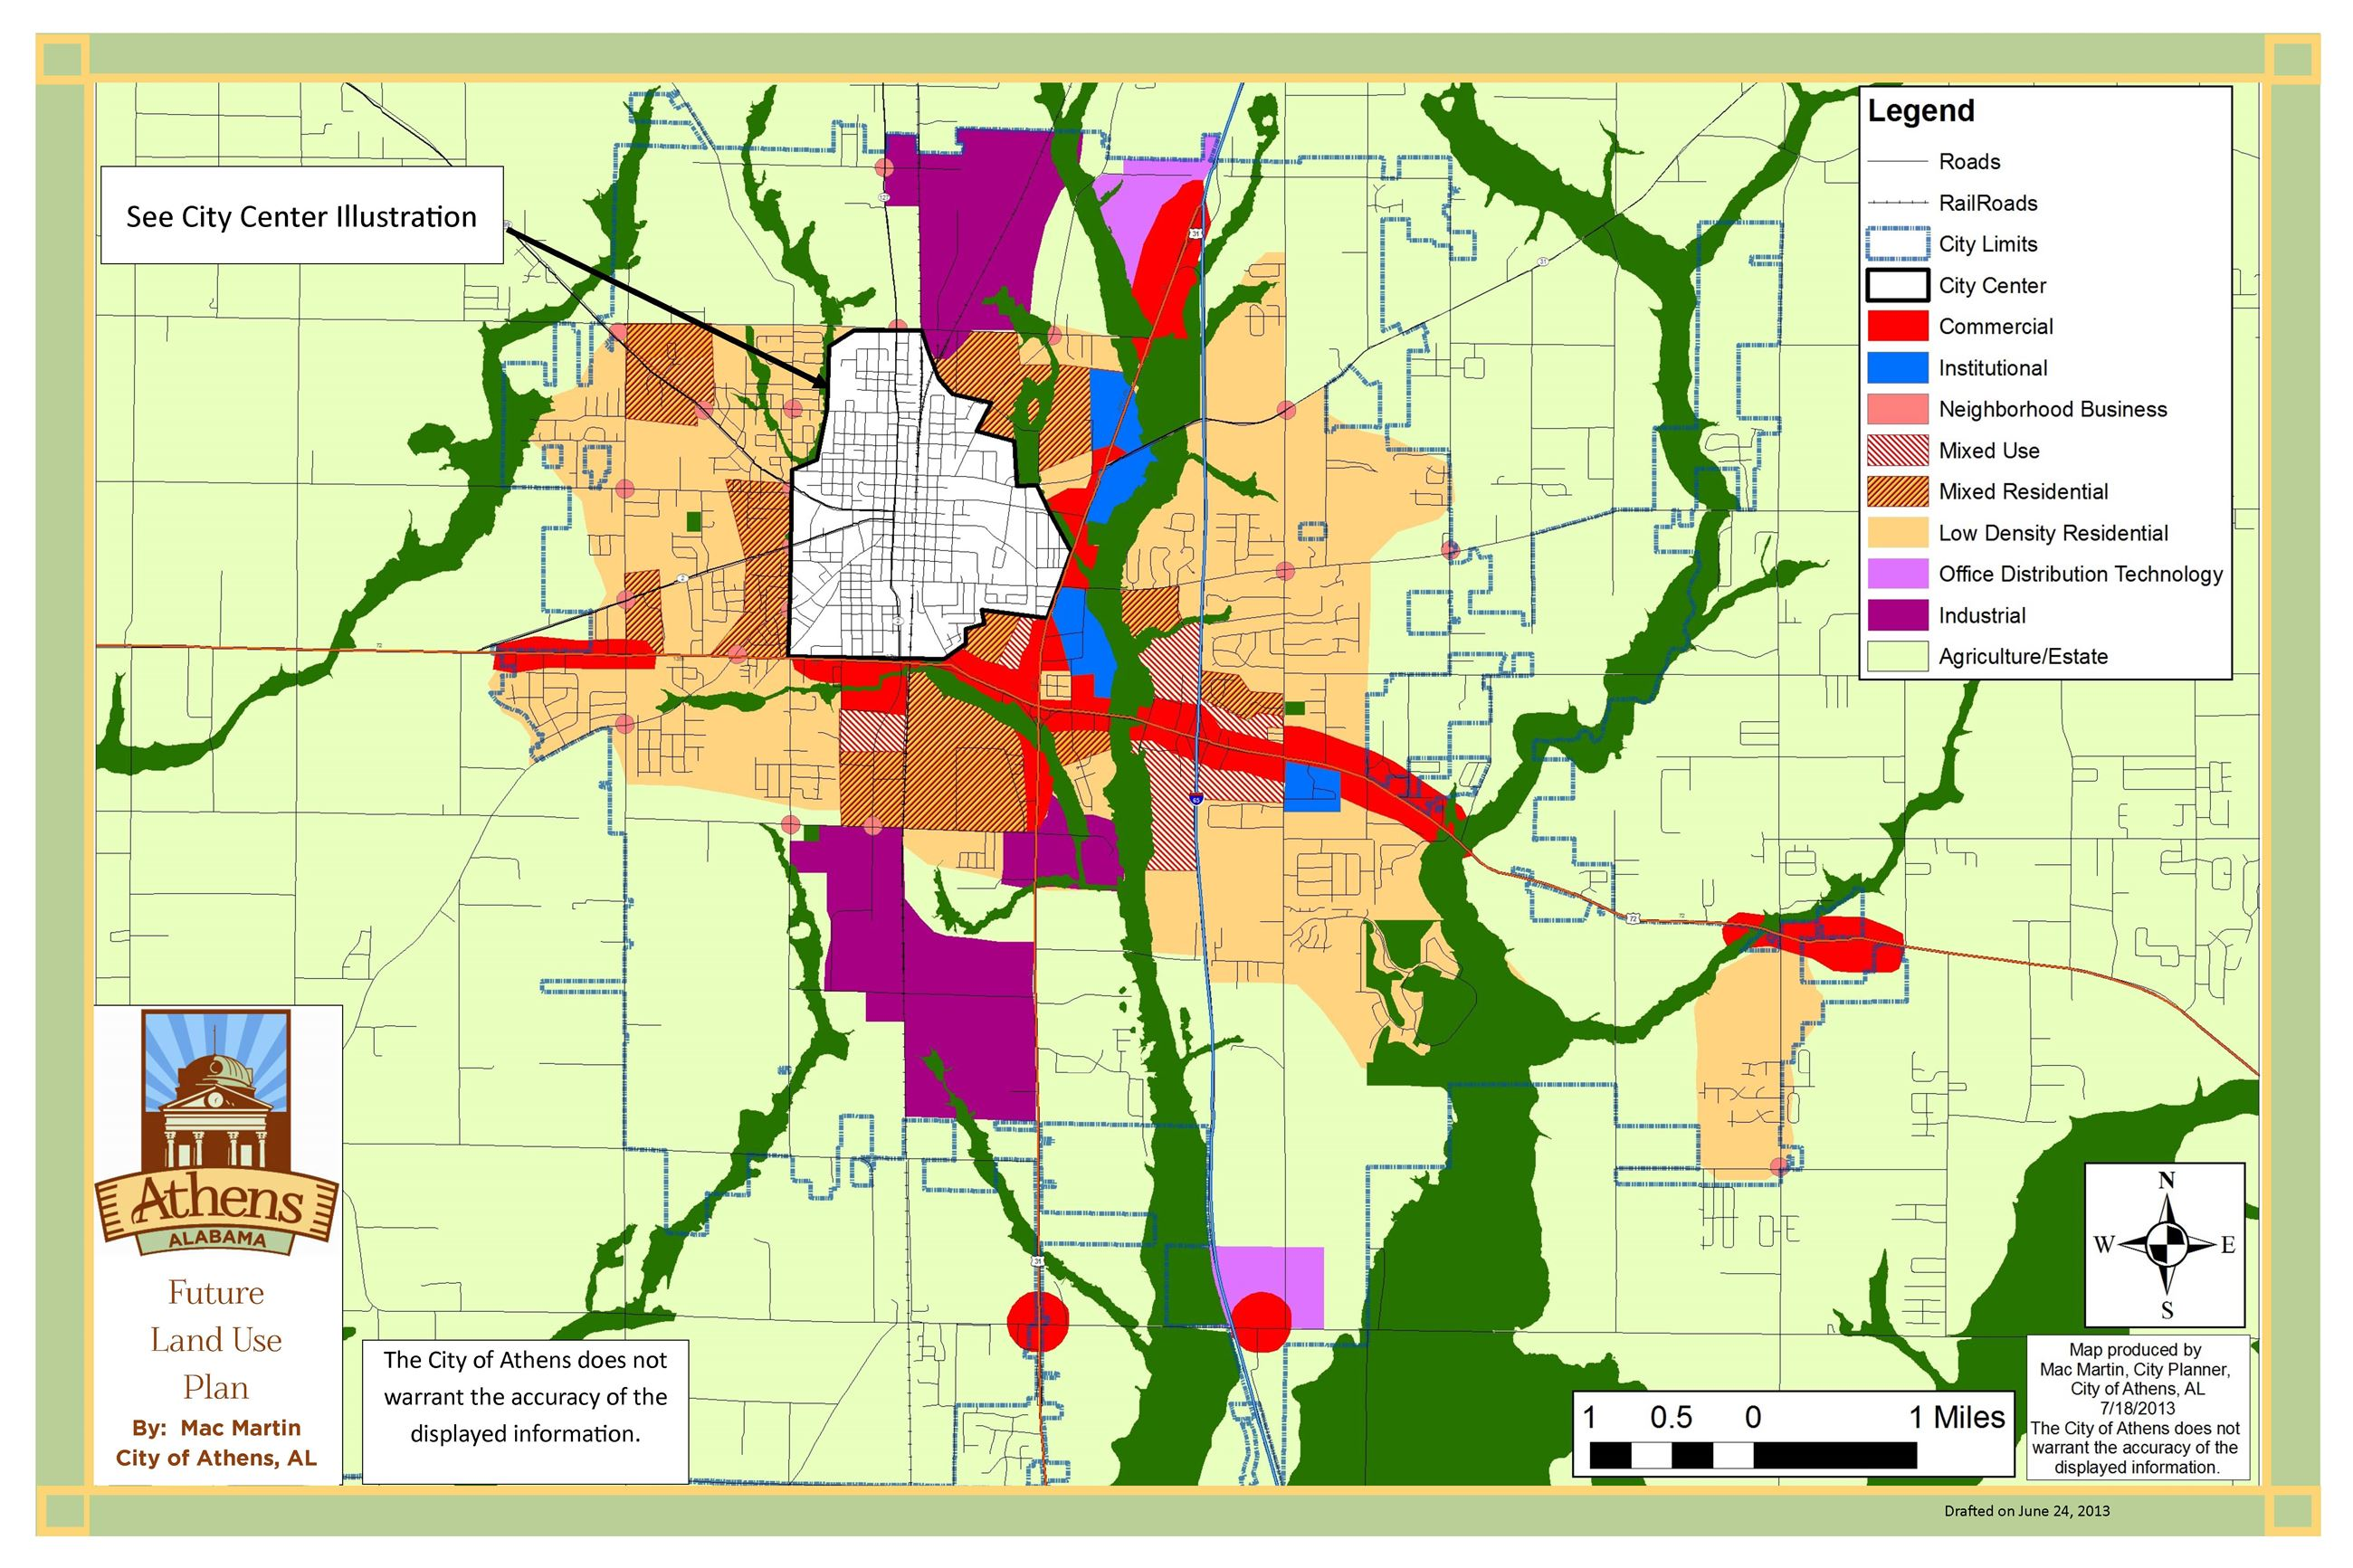 Strategic Development and Land Use Plan 7 map